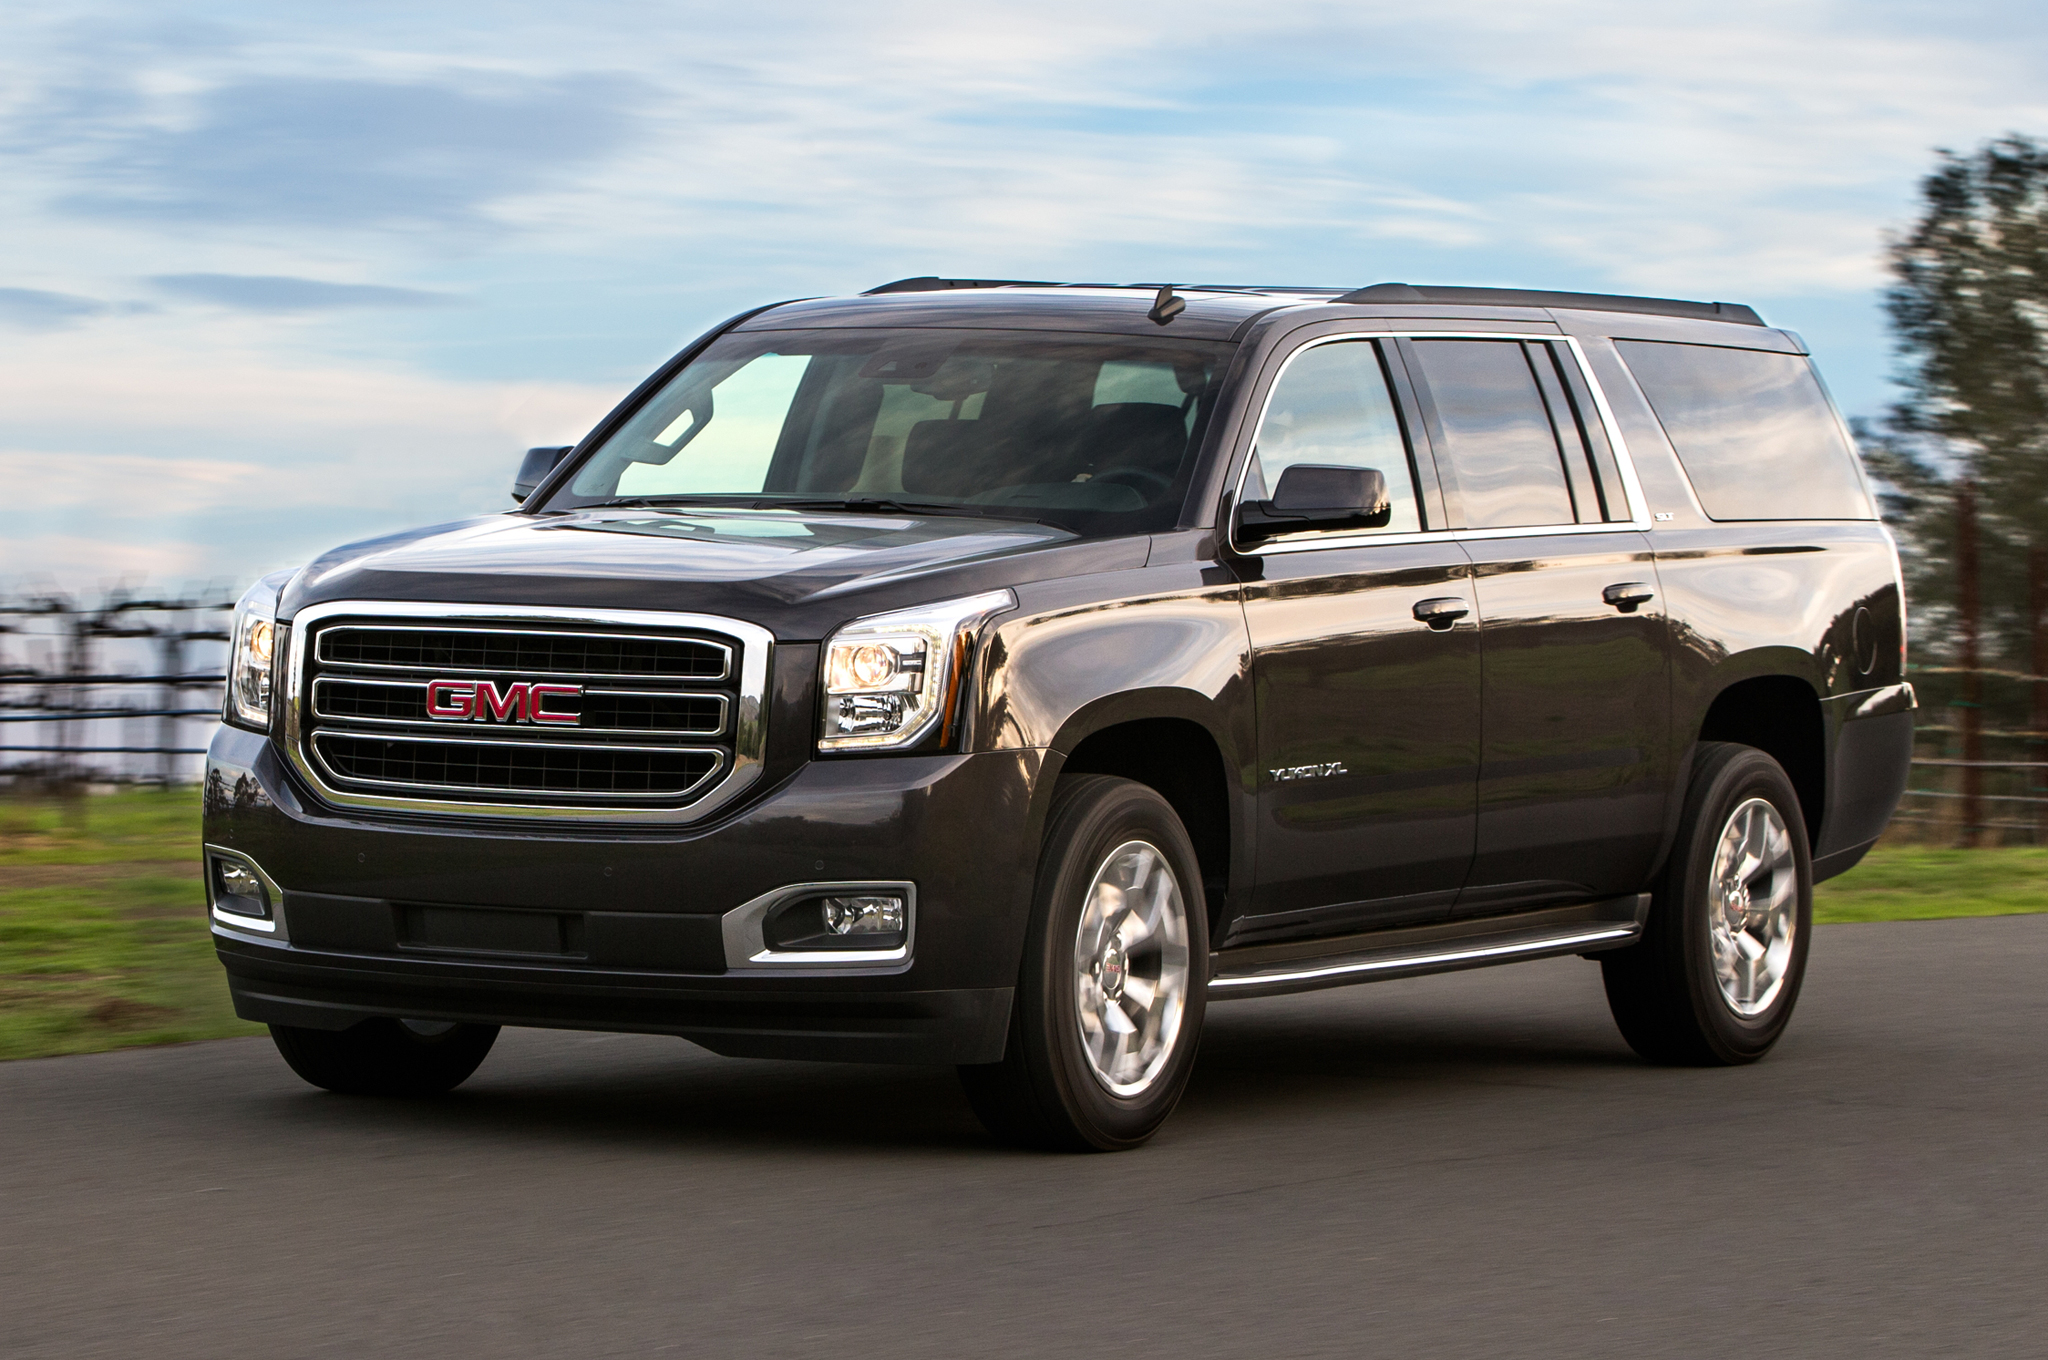 2018 GMC Yukon photo - 3